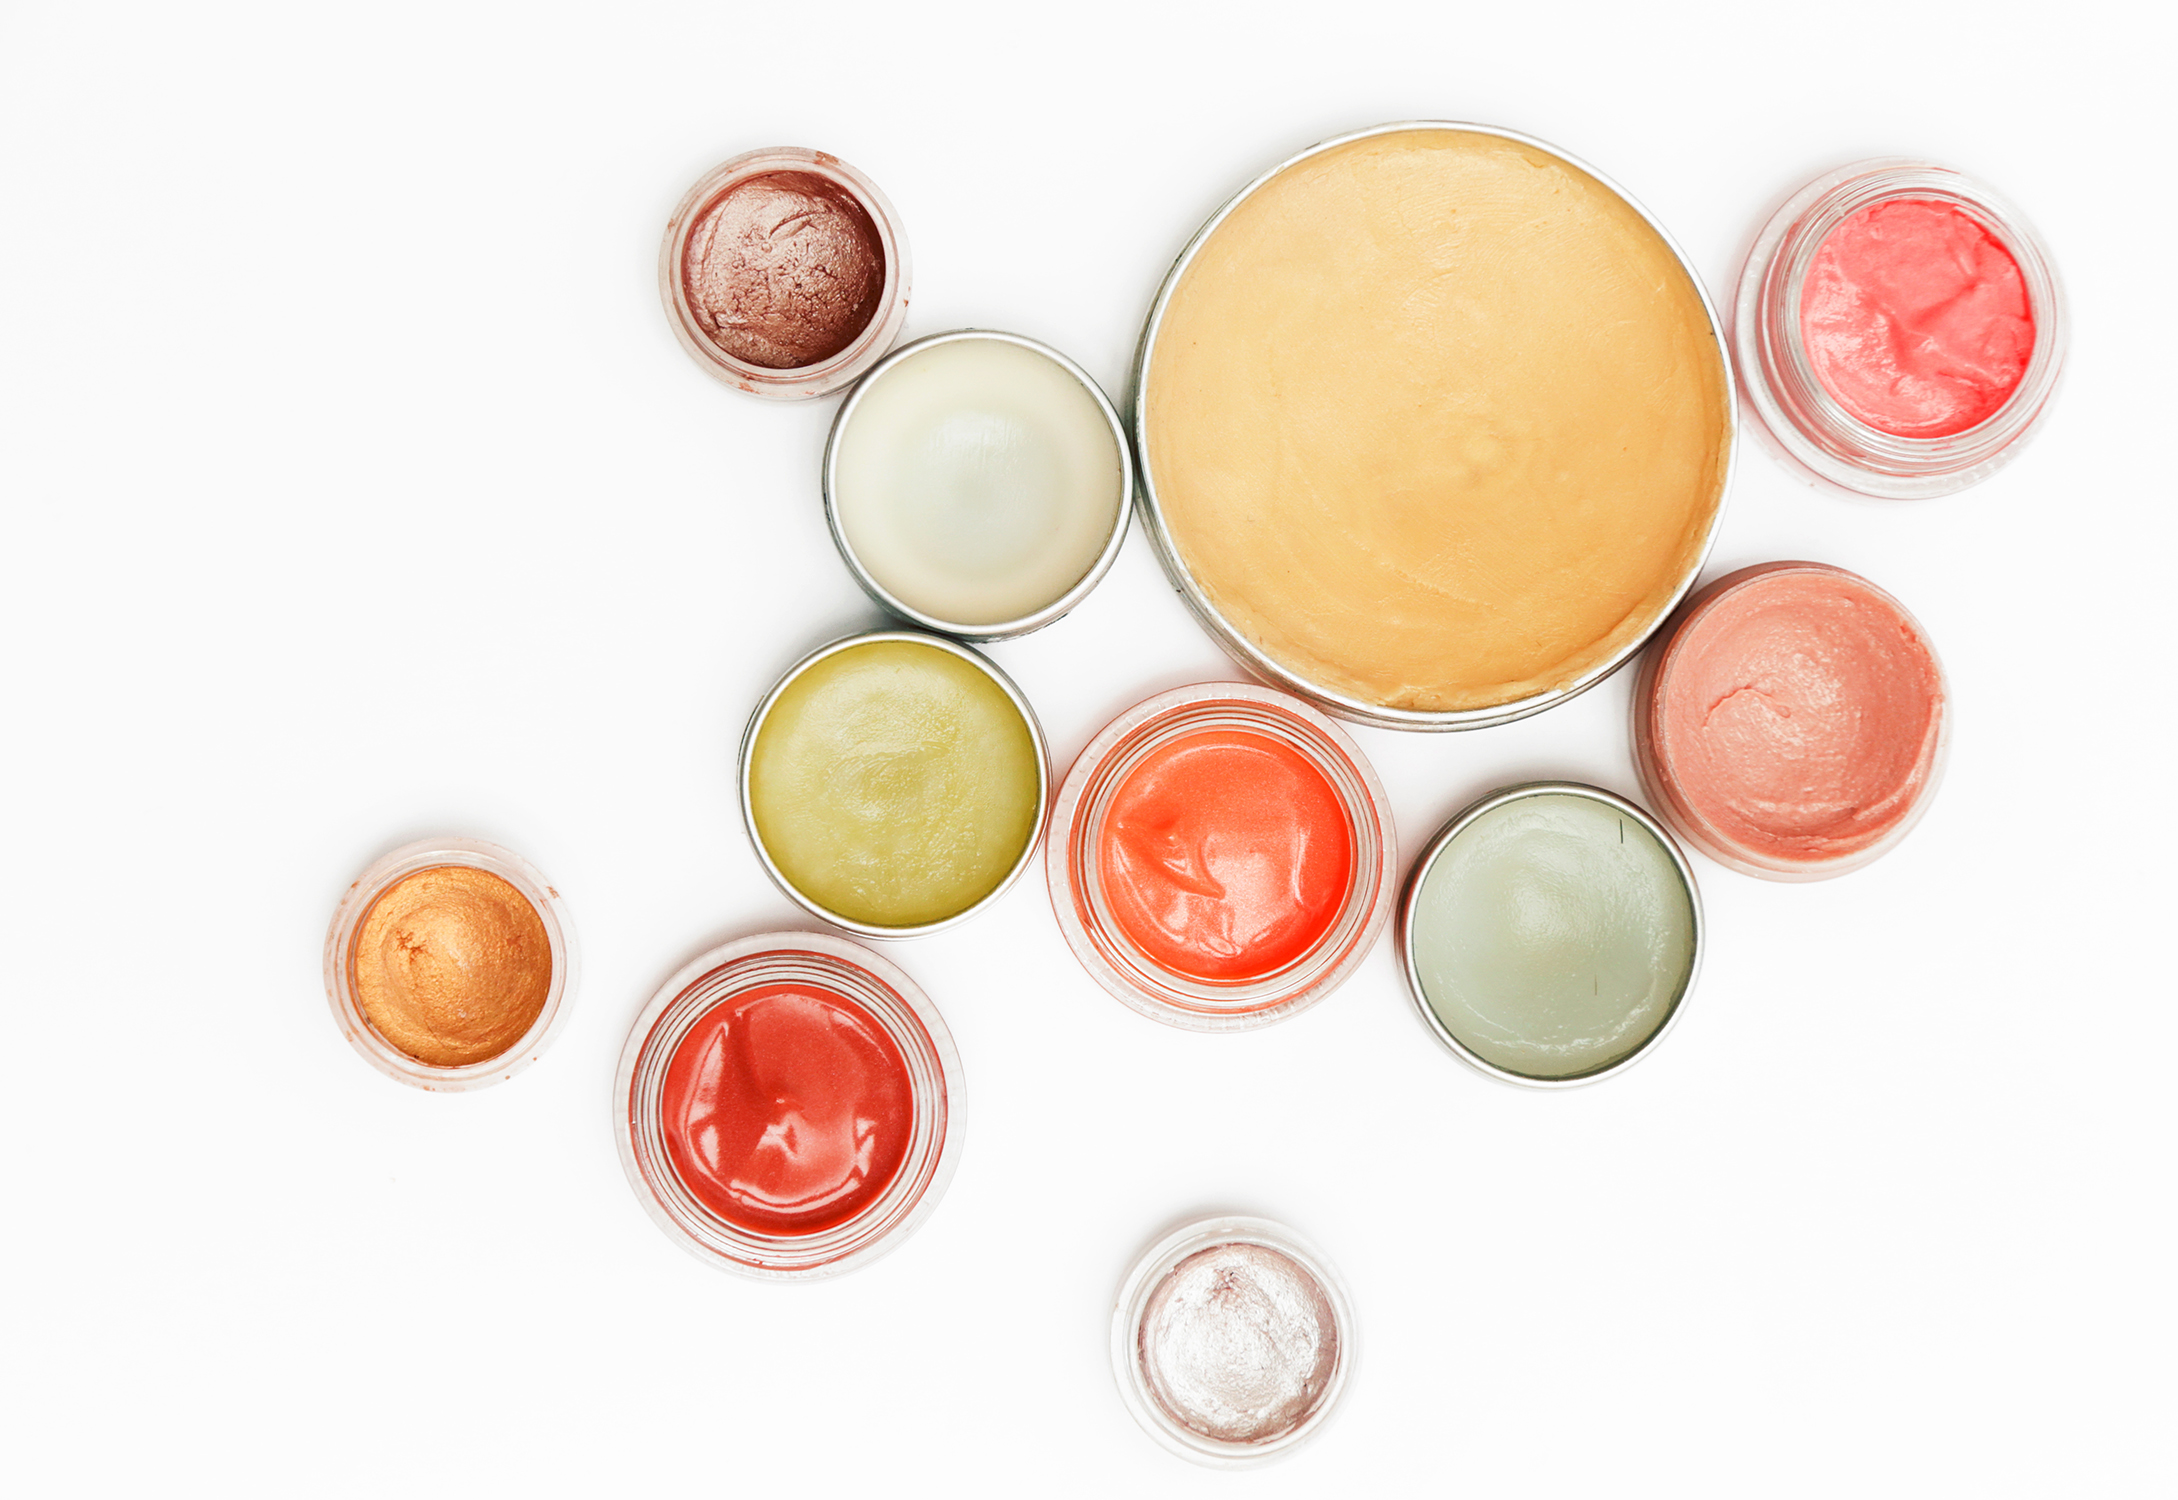 top view of decorative cosmetic lip balm containers